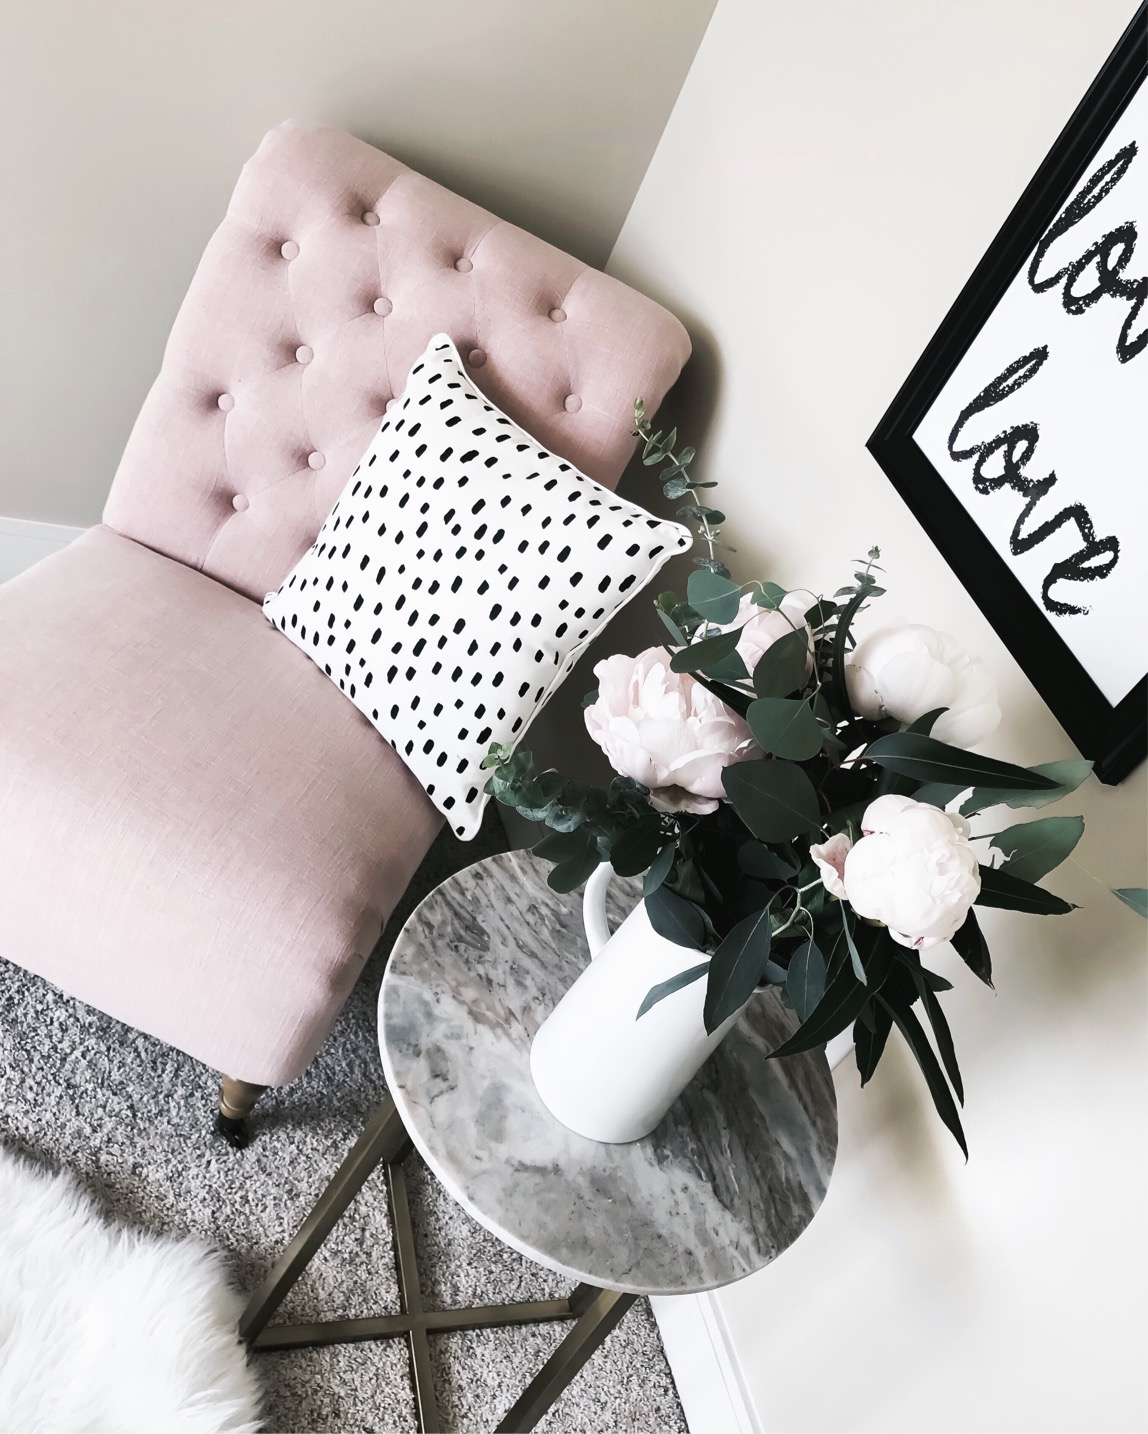 Tiffany Jais Houston fashion and lifestyle blogger | Pink tufted chair |